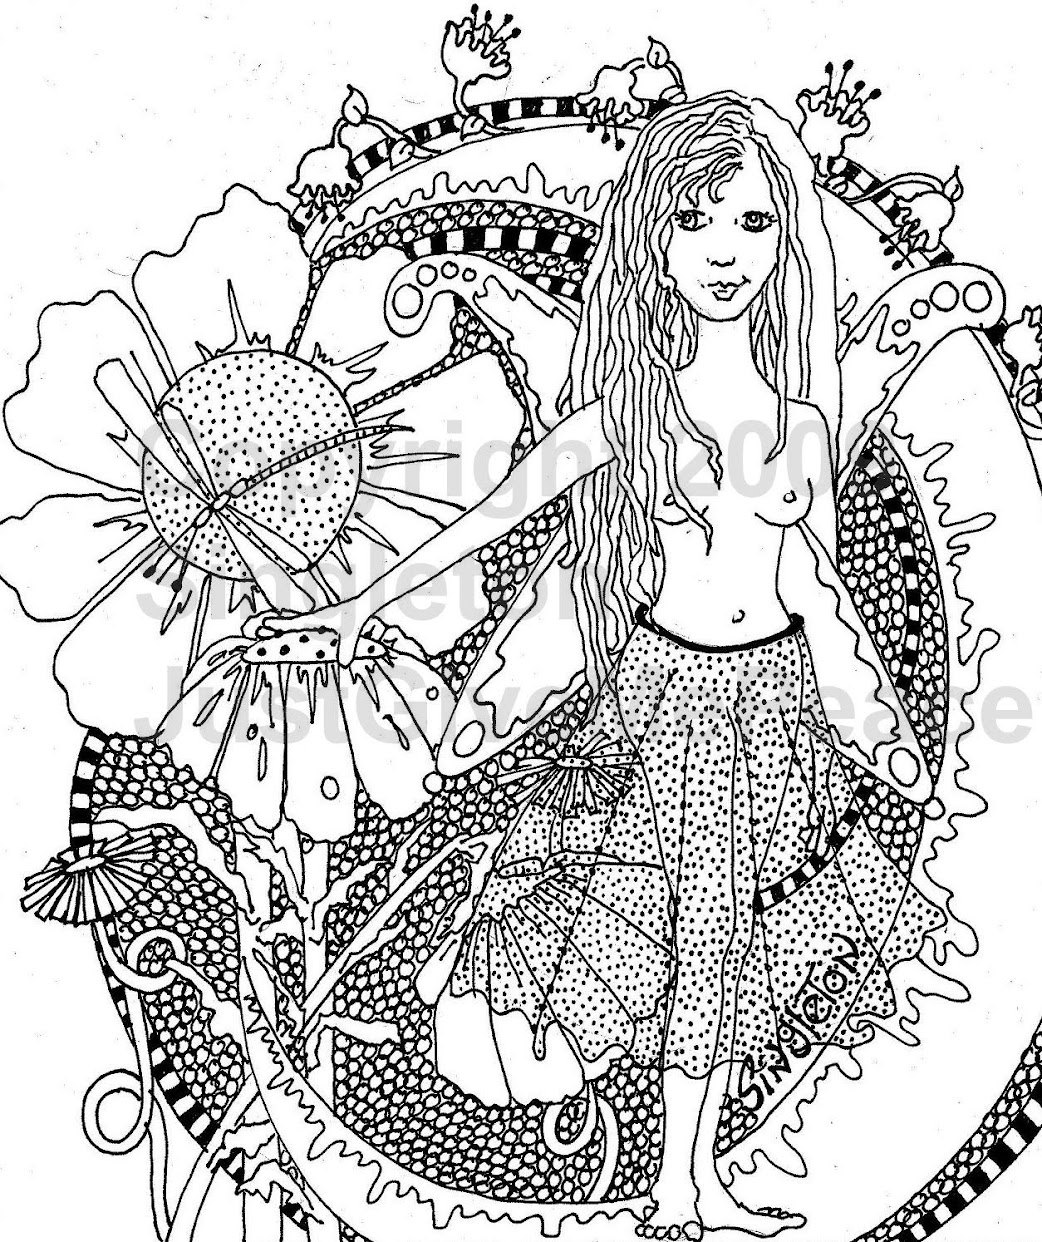 hippy coloring pages - photo#33